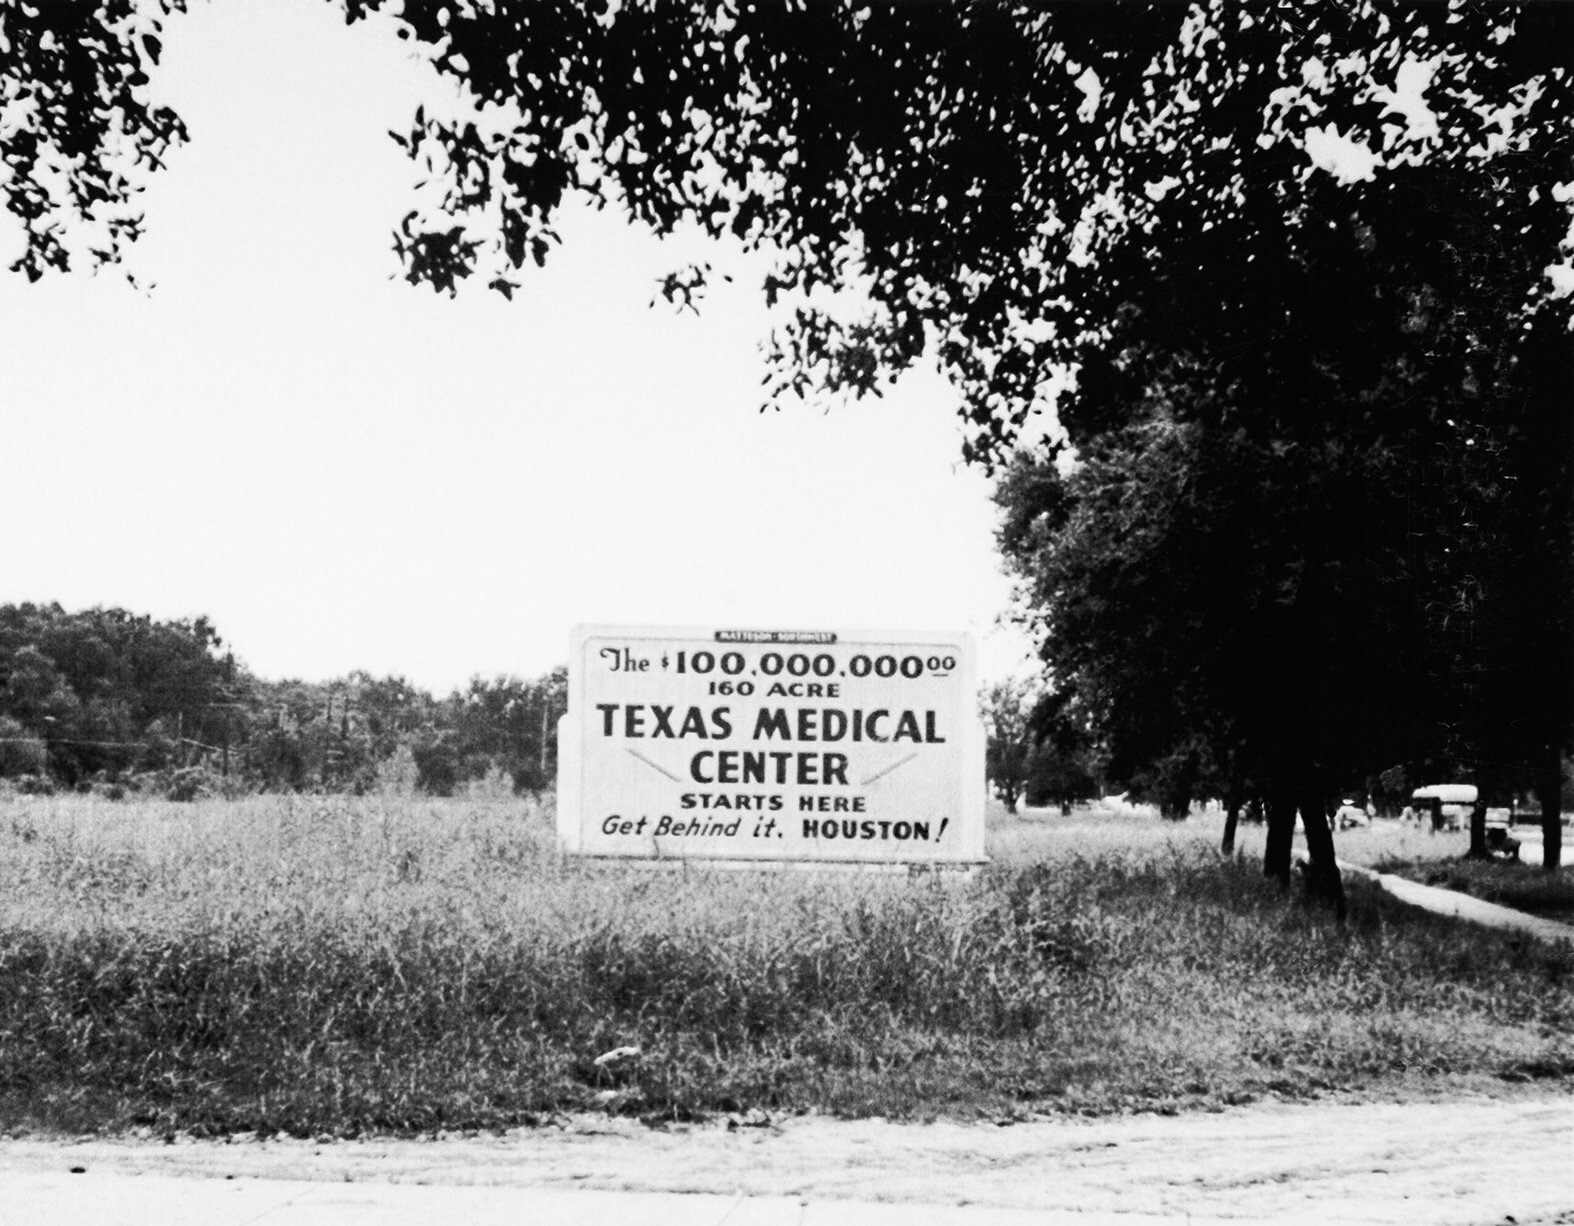 The M.D. Anderson Foundation purchased 134 acres by Hermann Hospital to create the Texas Medical Center.